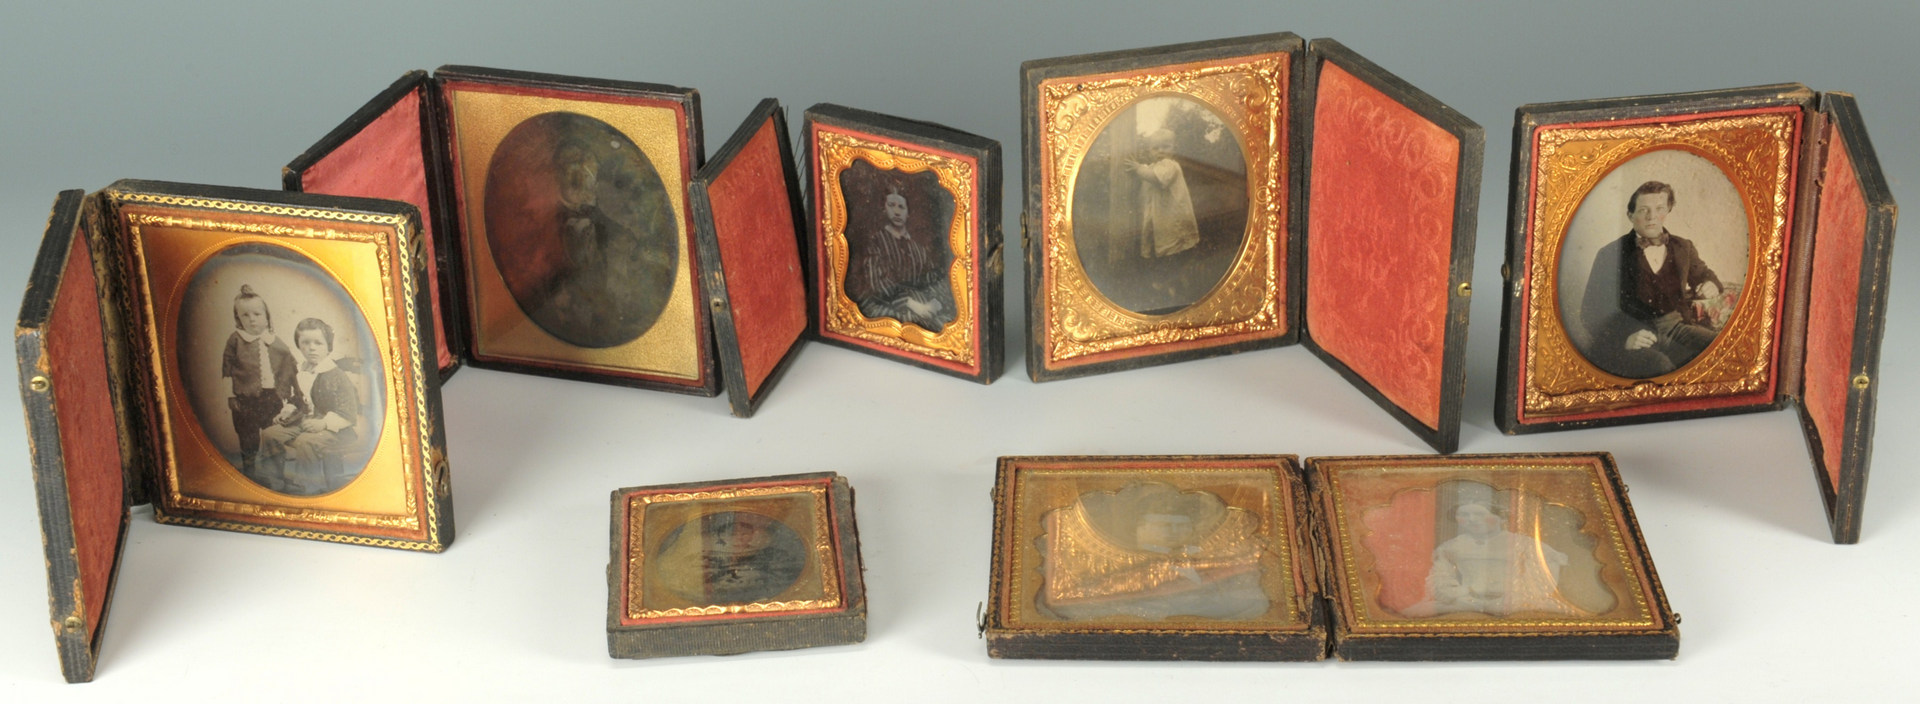 Lot 256: Large Grouping of Decorative Items